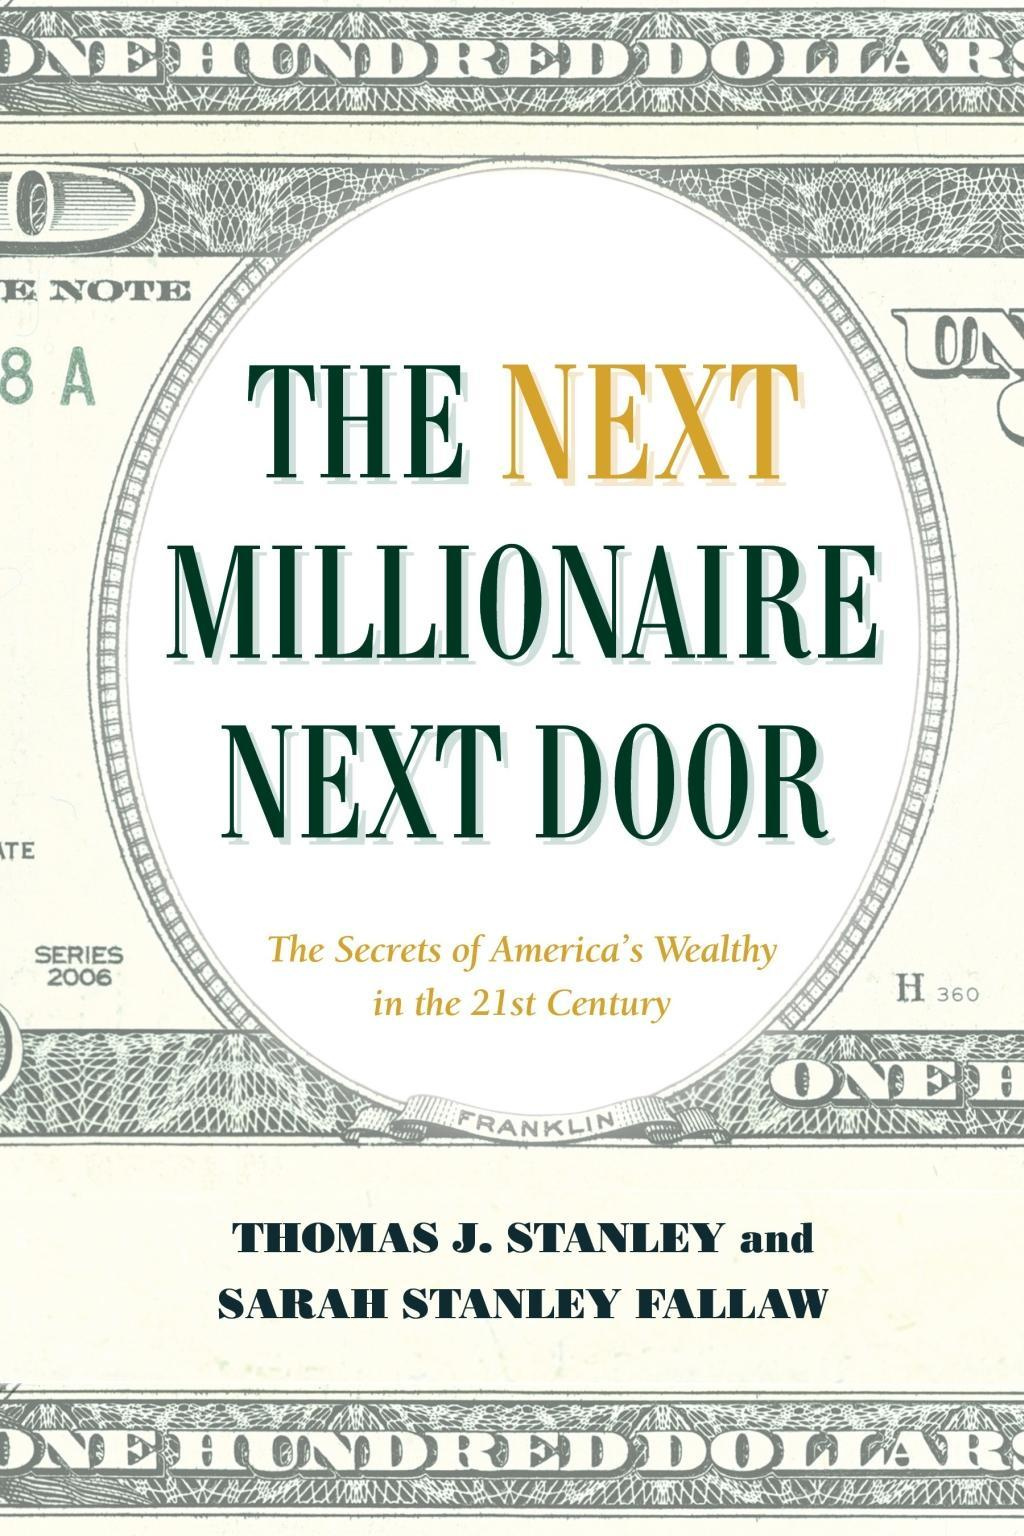 The Millennial Millionaire Next Door: The Secrets of America's Wealthy in the 21st Century